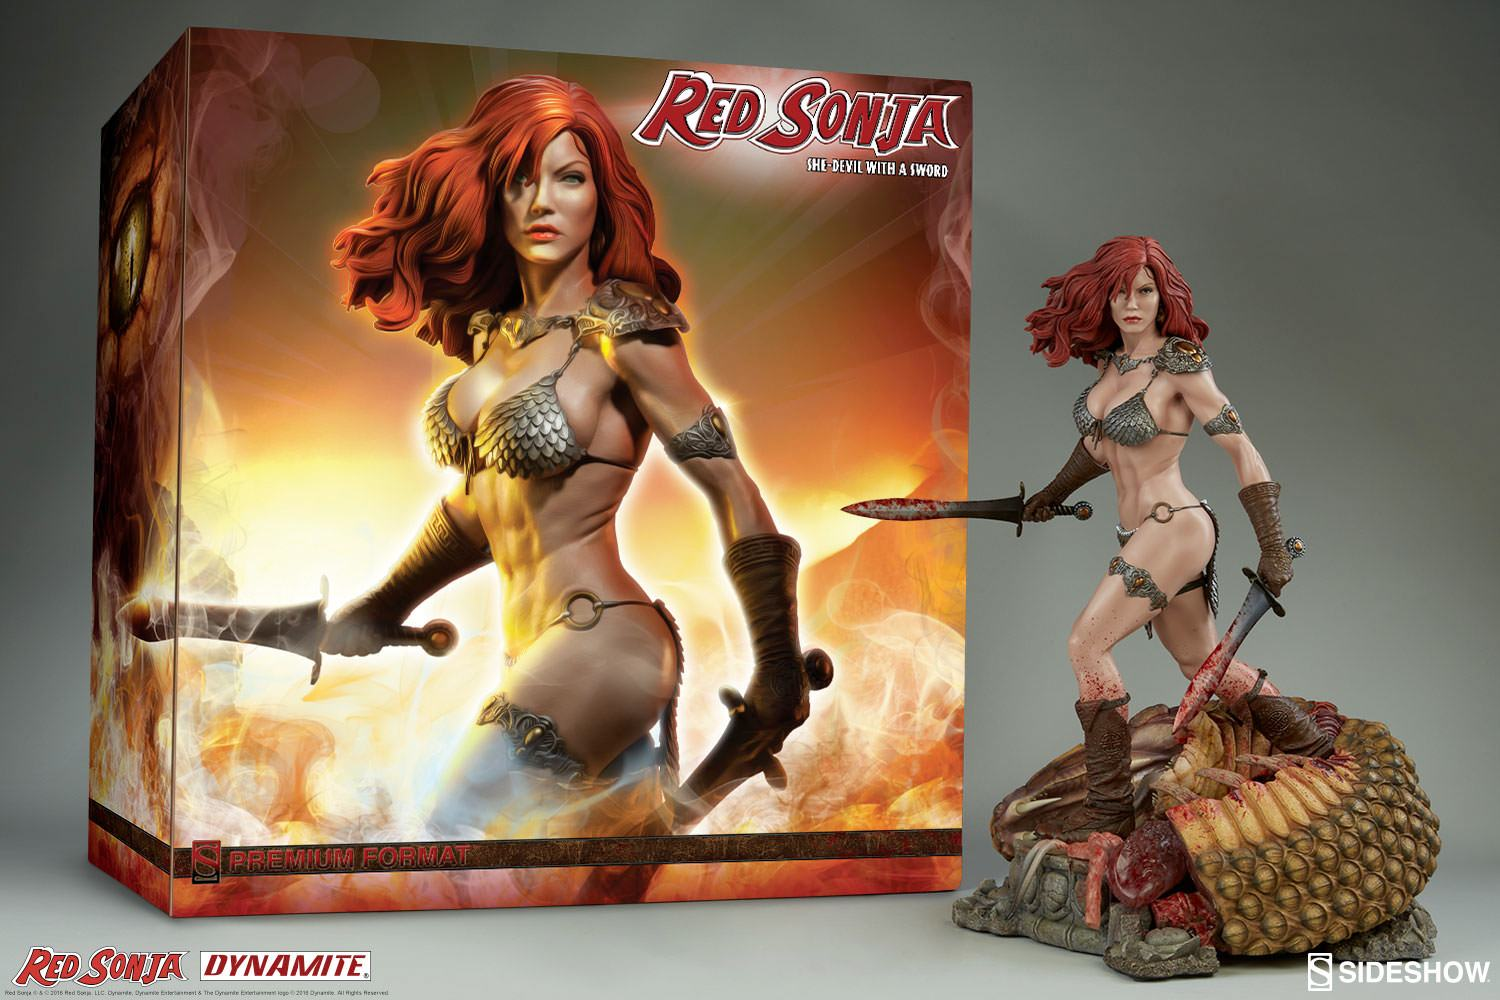 red-sonja-she-devil-with-a-sword-premium-format-figure-12